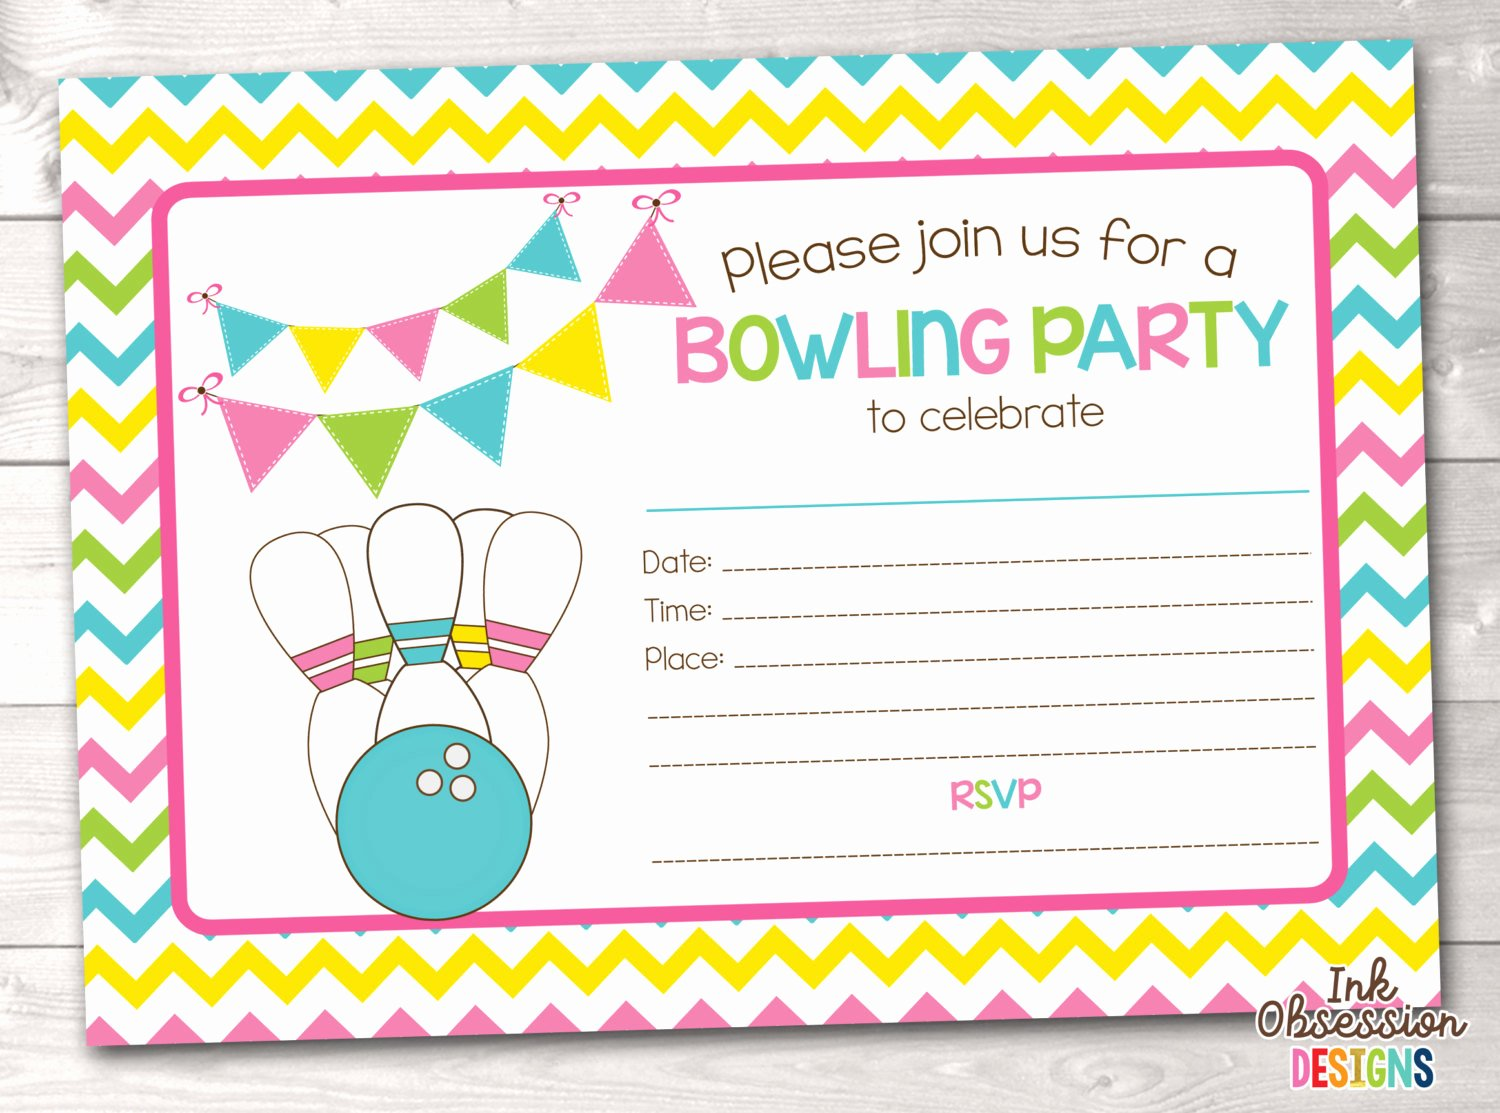 Bowling Party Invite Template Unique Bowling Party Blank Invitations